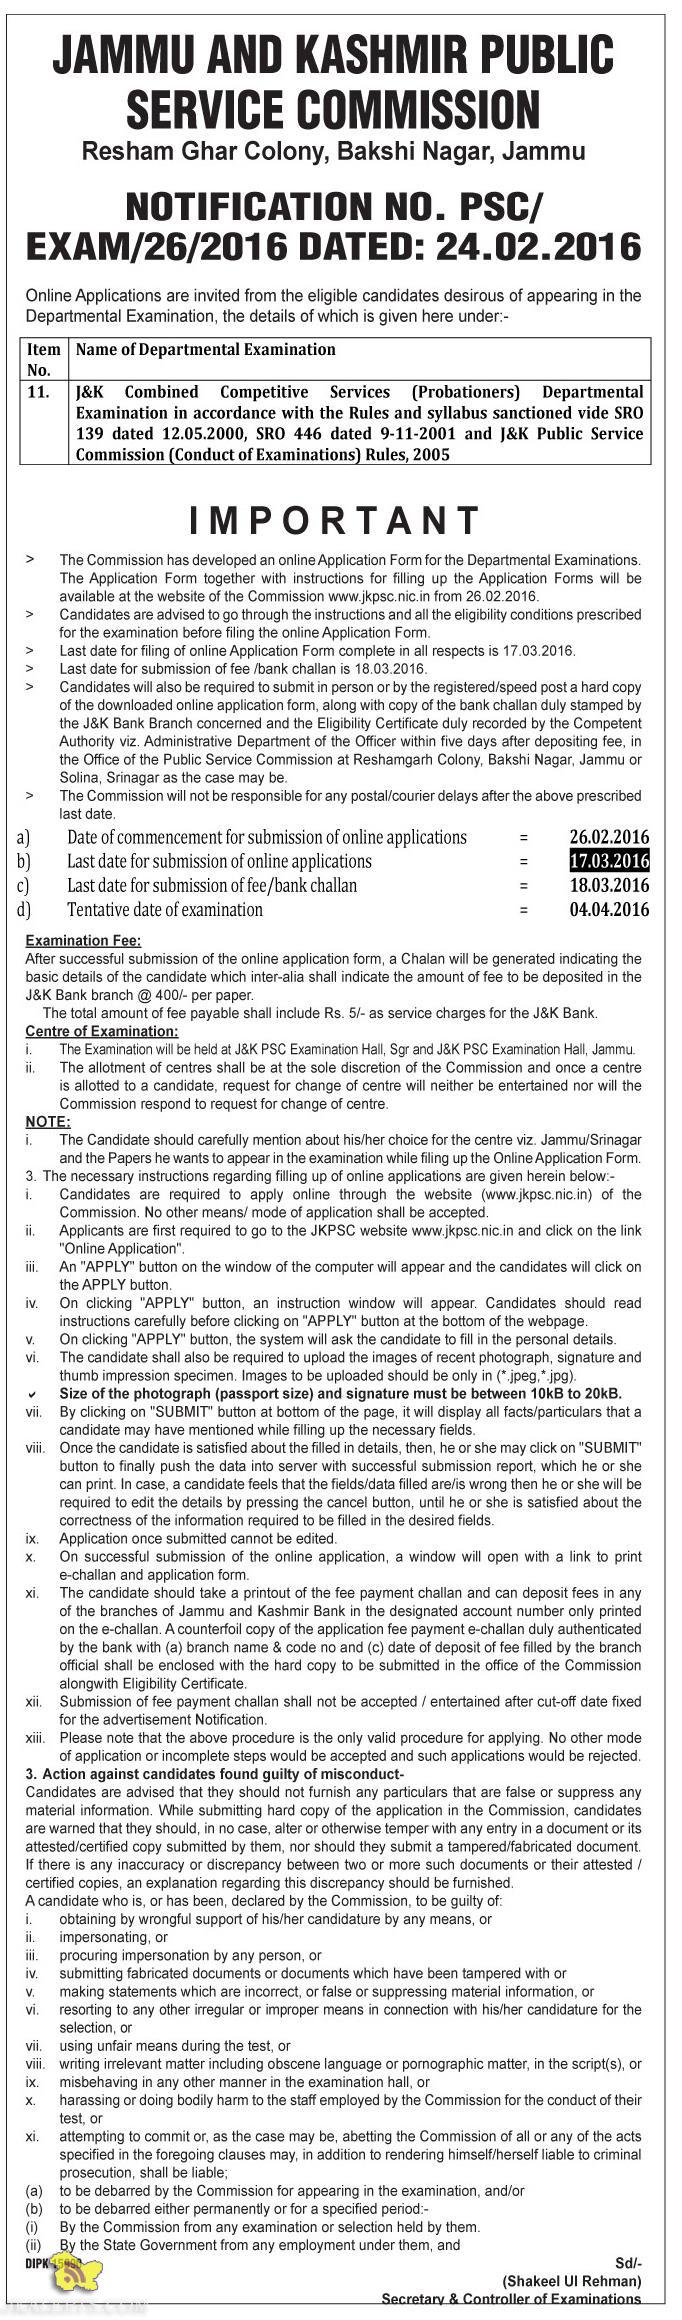 JKPSC Notification Online Applications for appearing in the Departmental Examination